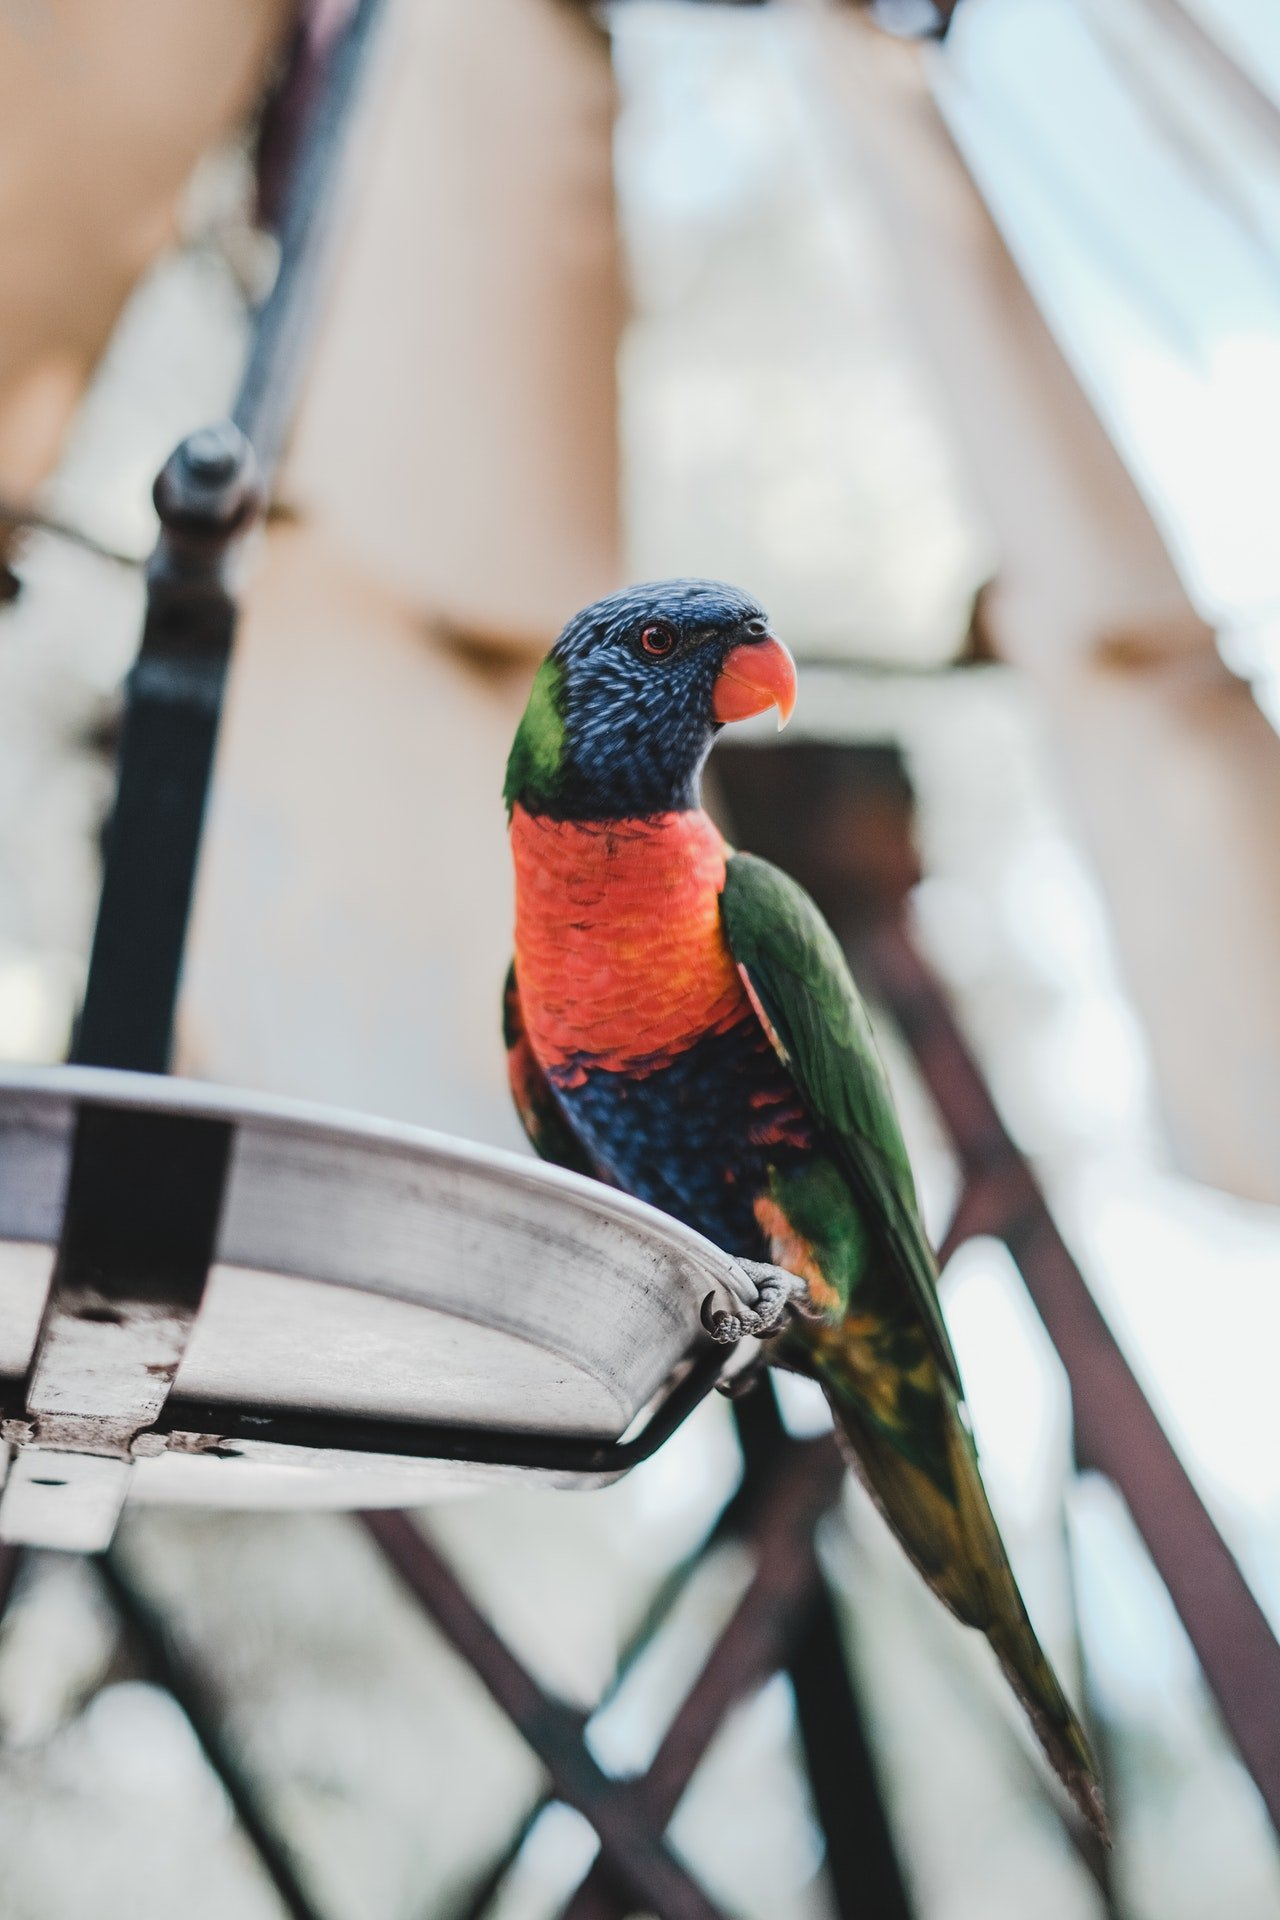 Photo of a colorful parrot | Photo: Pexels